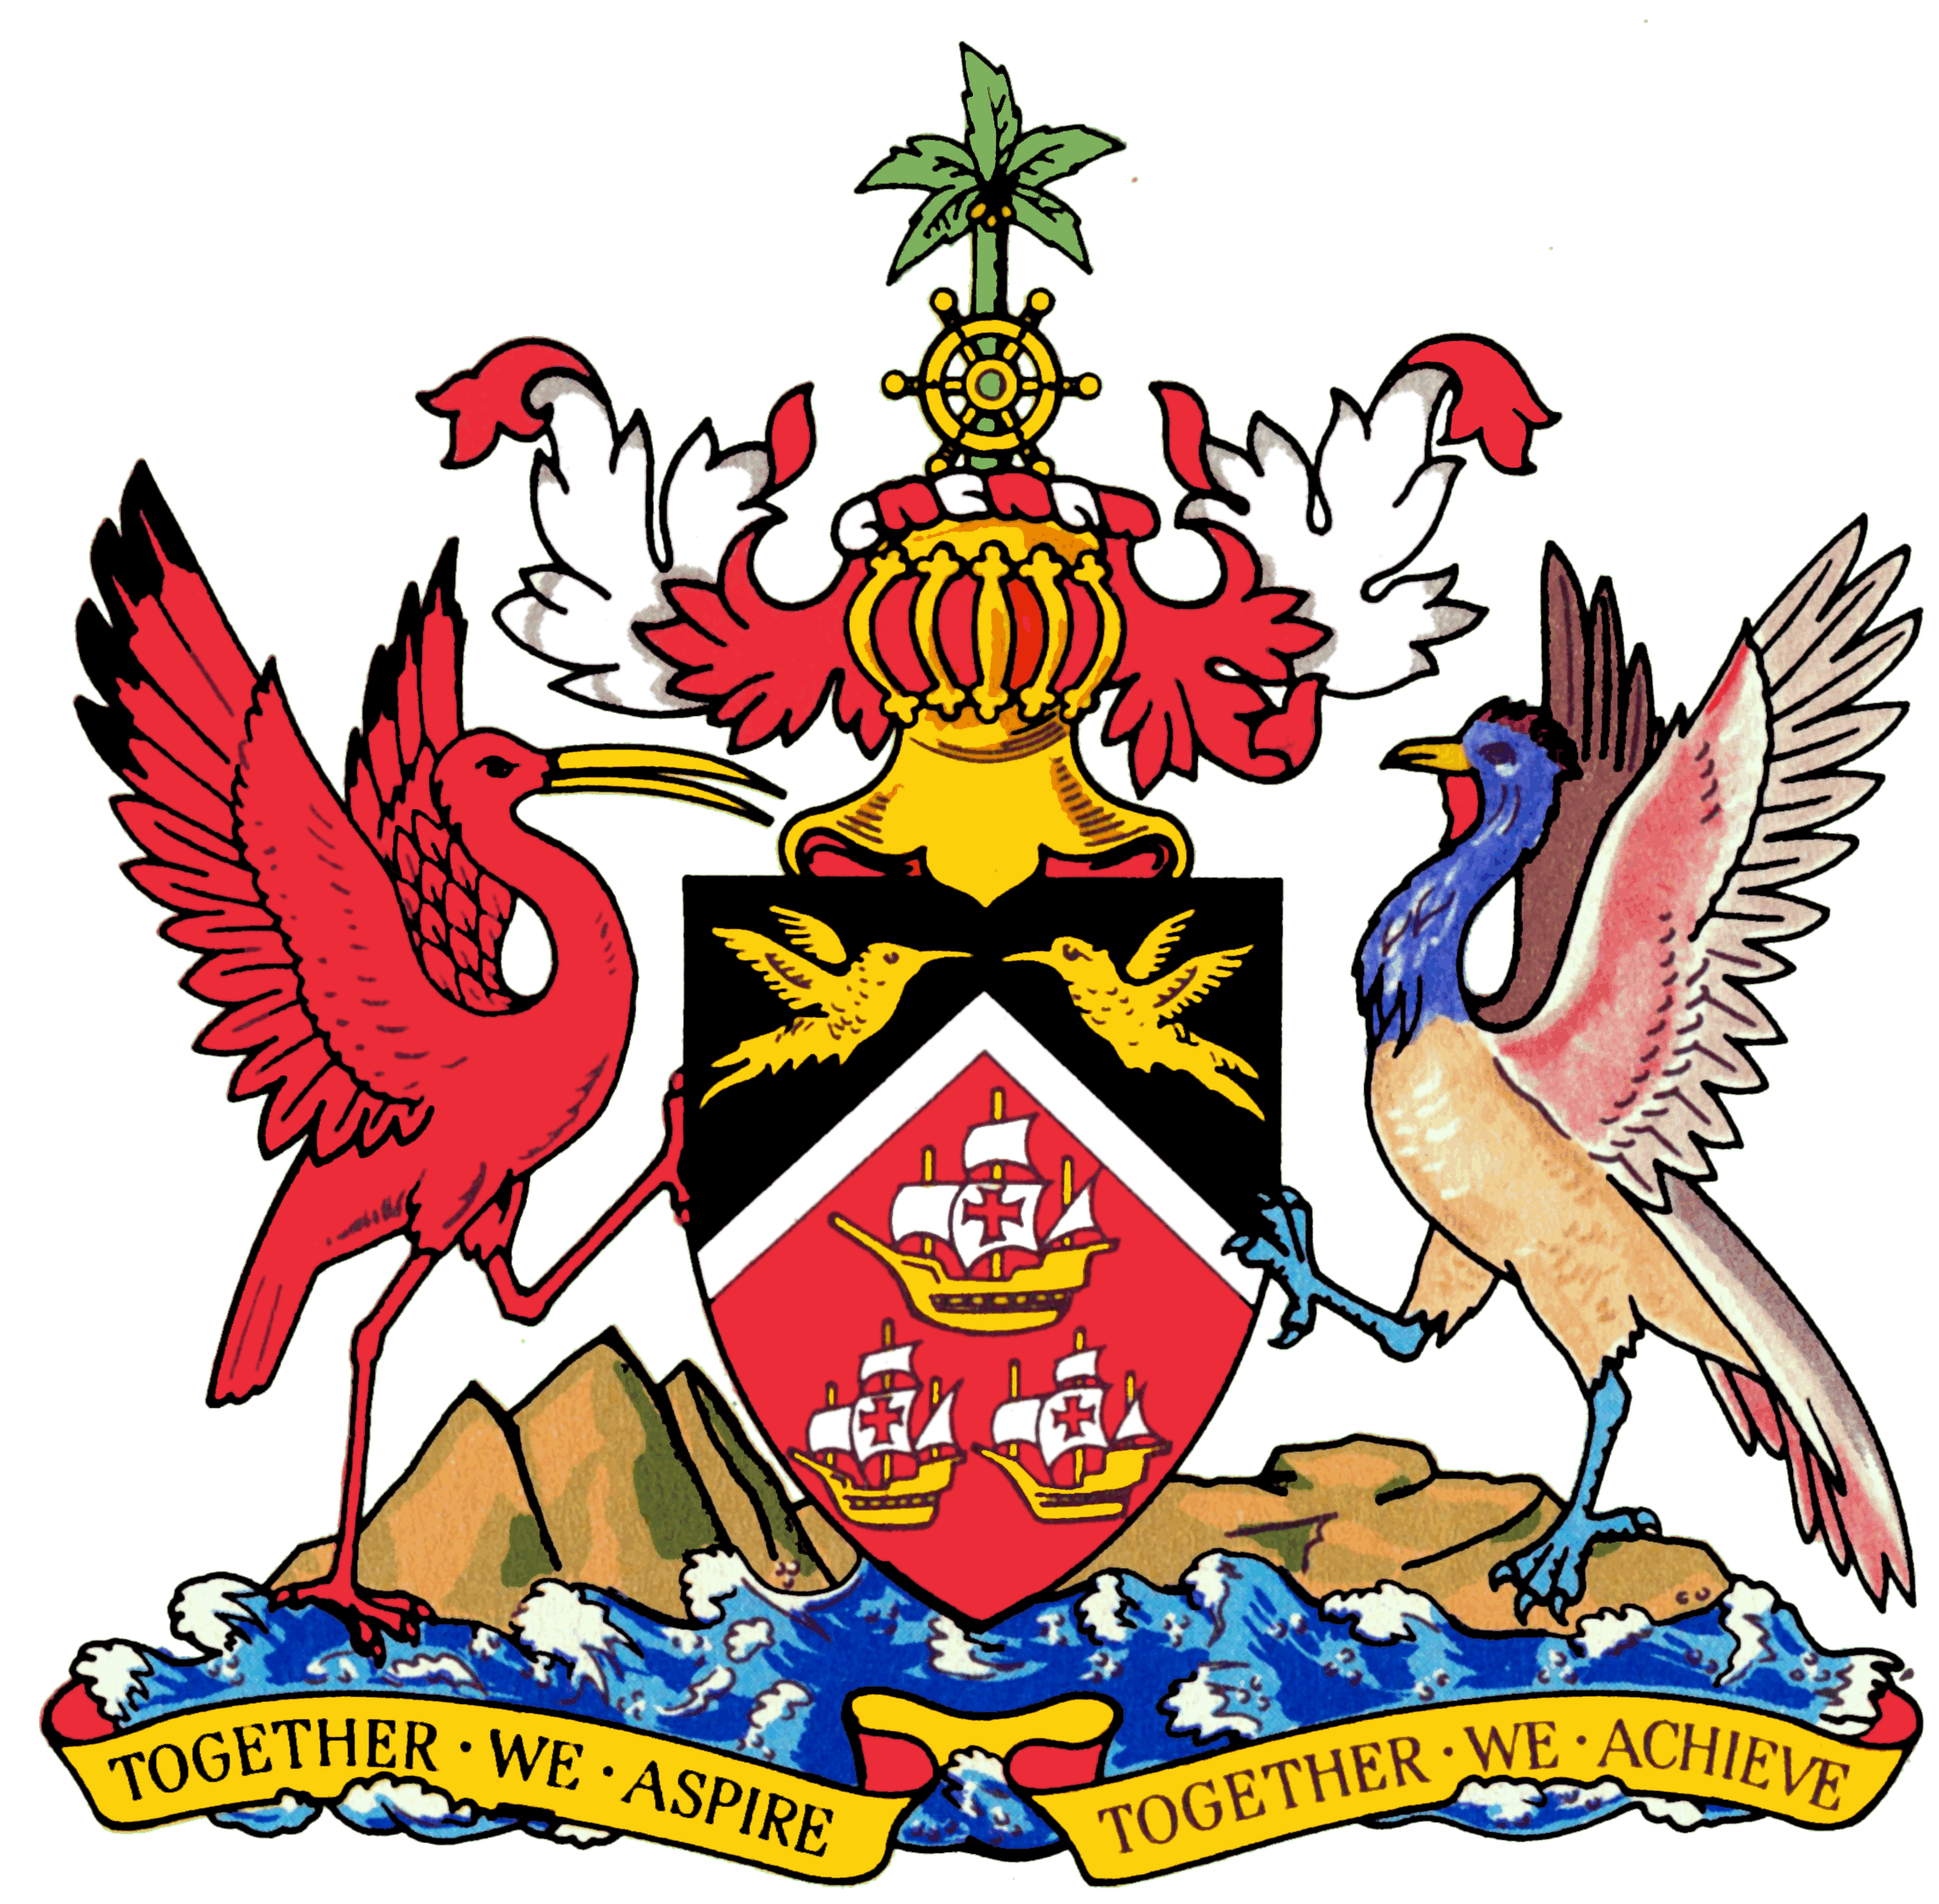 File Coat of arms of Trinidad and Tobago in addition Army Cadet Force also National Emblems Of Trinidad And Tobago moreover Trinidad And Tobago likewise Trinidad and Tobago Defence Force. on national motto of trinidad and tobago